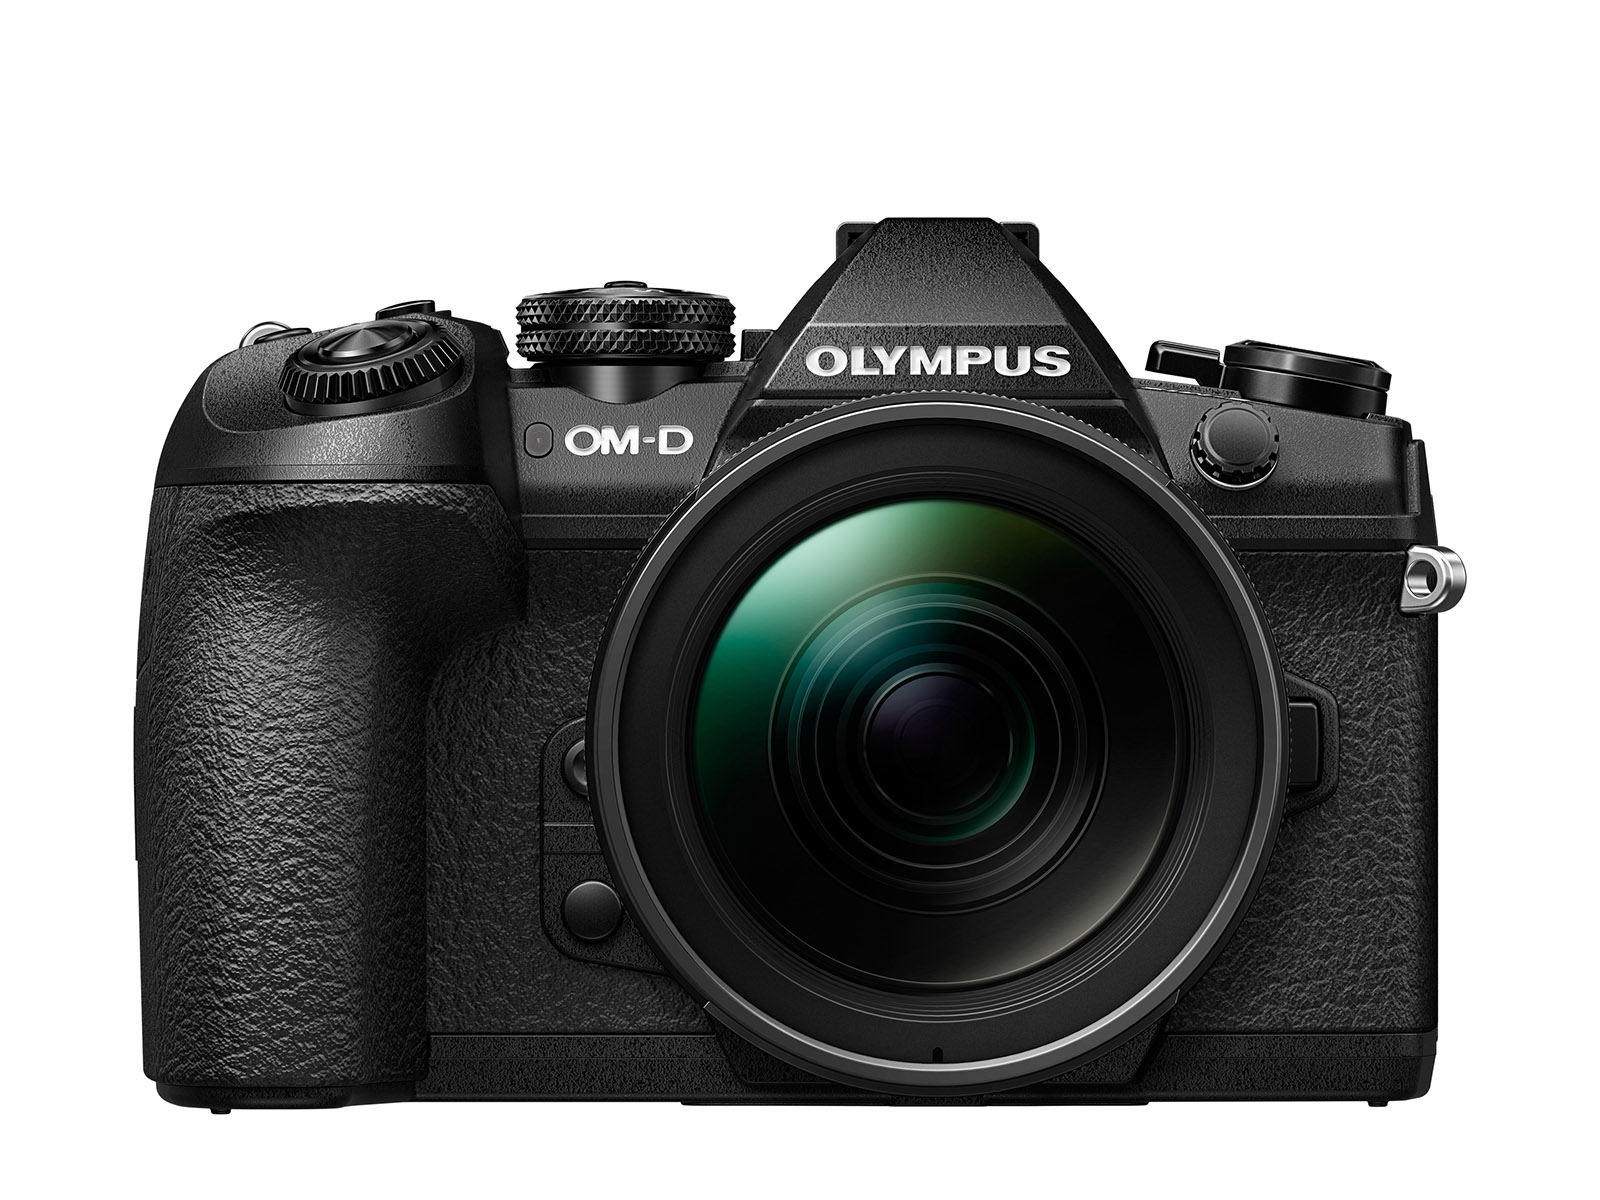 The new Olympus E-M1 Mark II